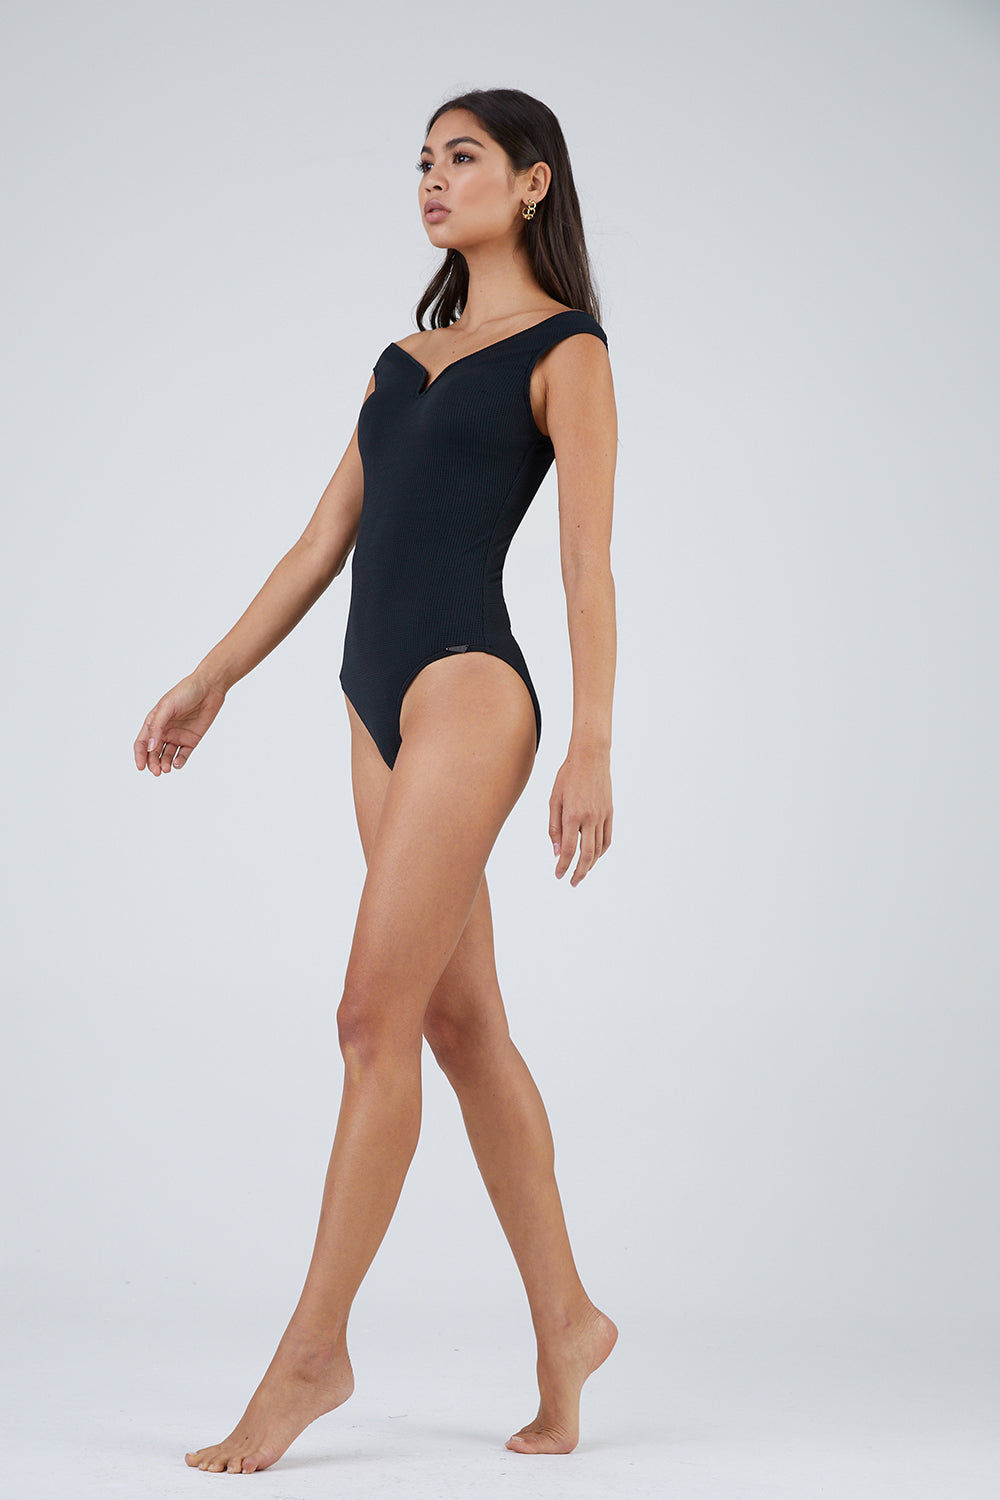 PRISM Valencia Off-The-Shoulder One Piece Swimsuit - Onyx One Piece | Onyx| Prism Valencia Off Shoulder One Piece Swimsuit - Onyx Sweetheart neckline Moulded cups Low cut leg Moderate to full coverage  70% polyamide 30% Elastane Side View